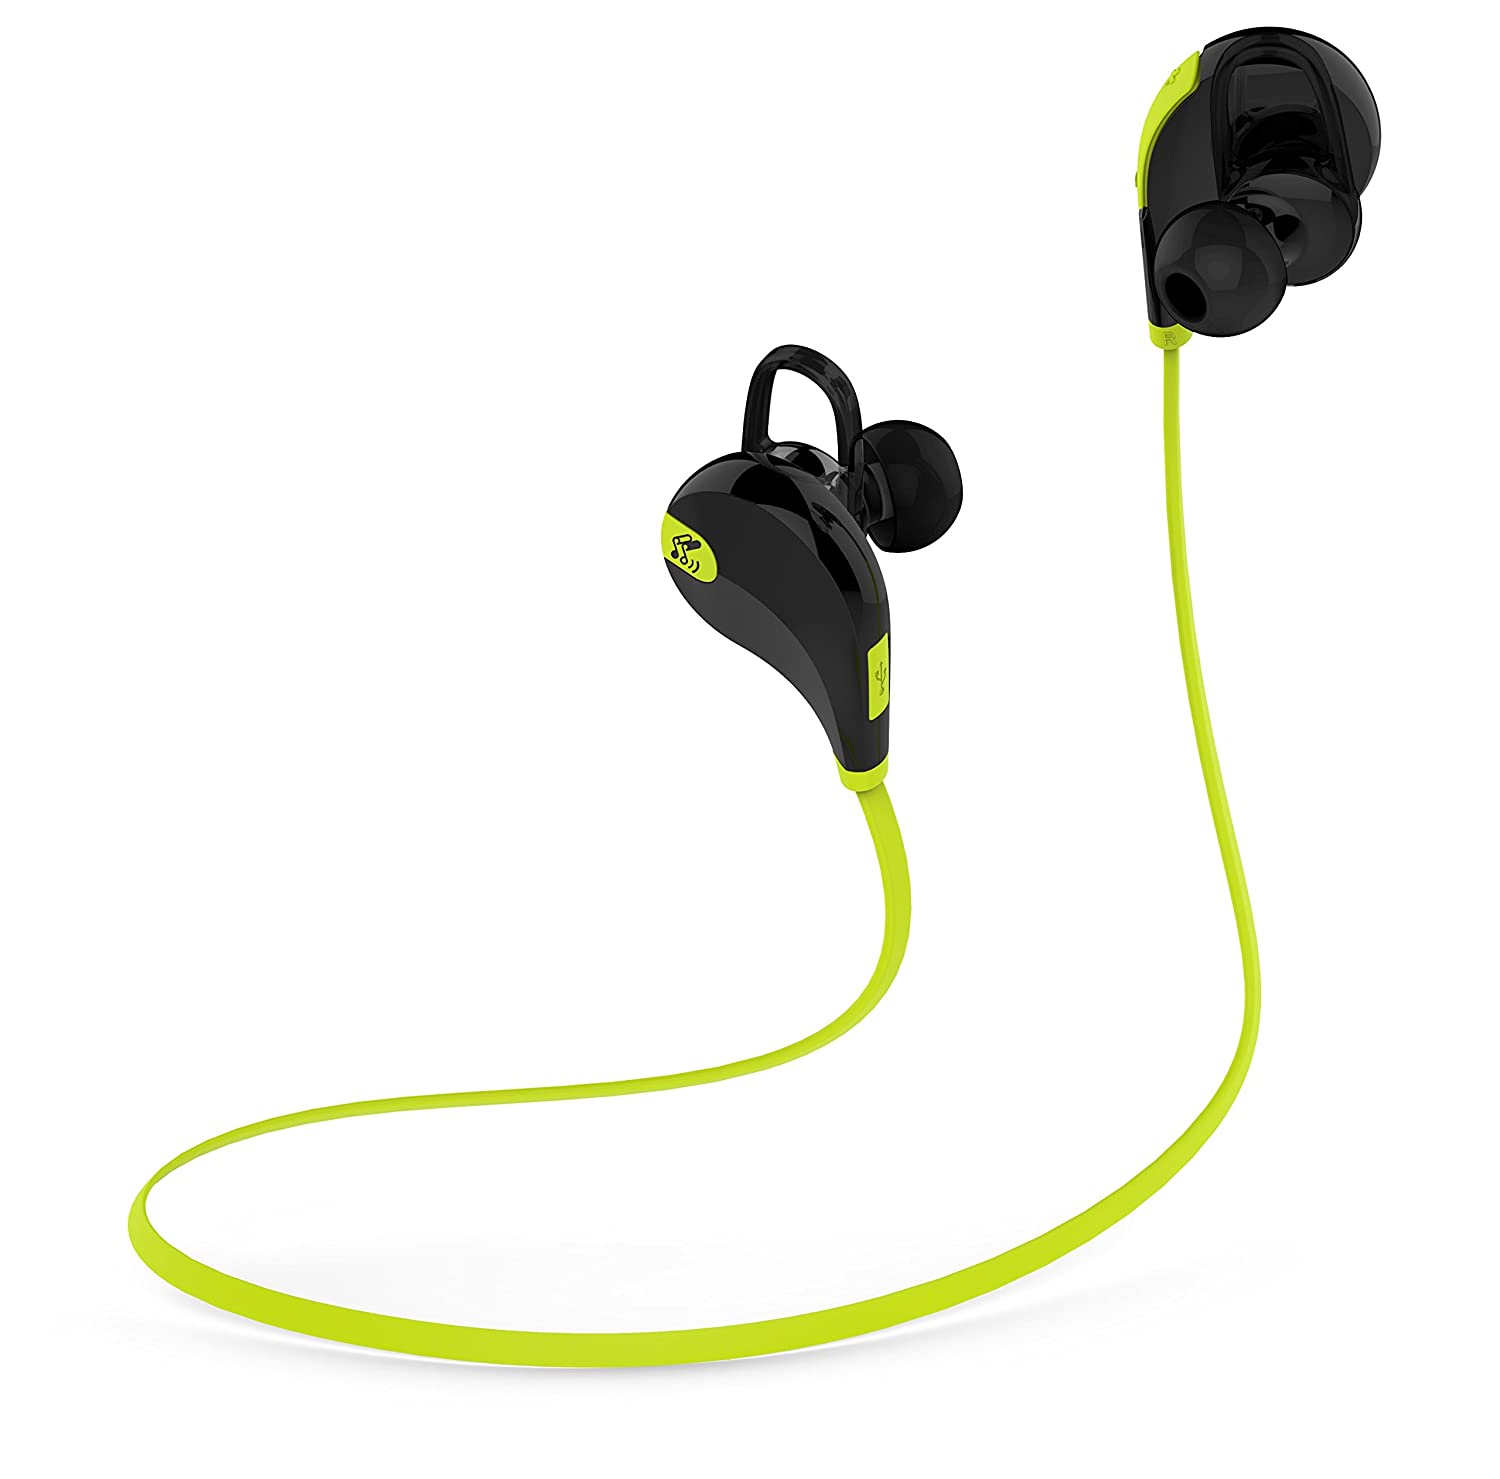 Soundpeat wireless headphones for working out